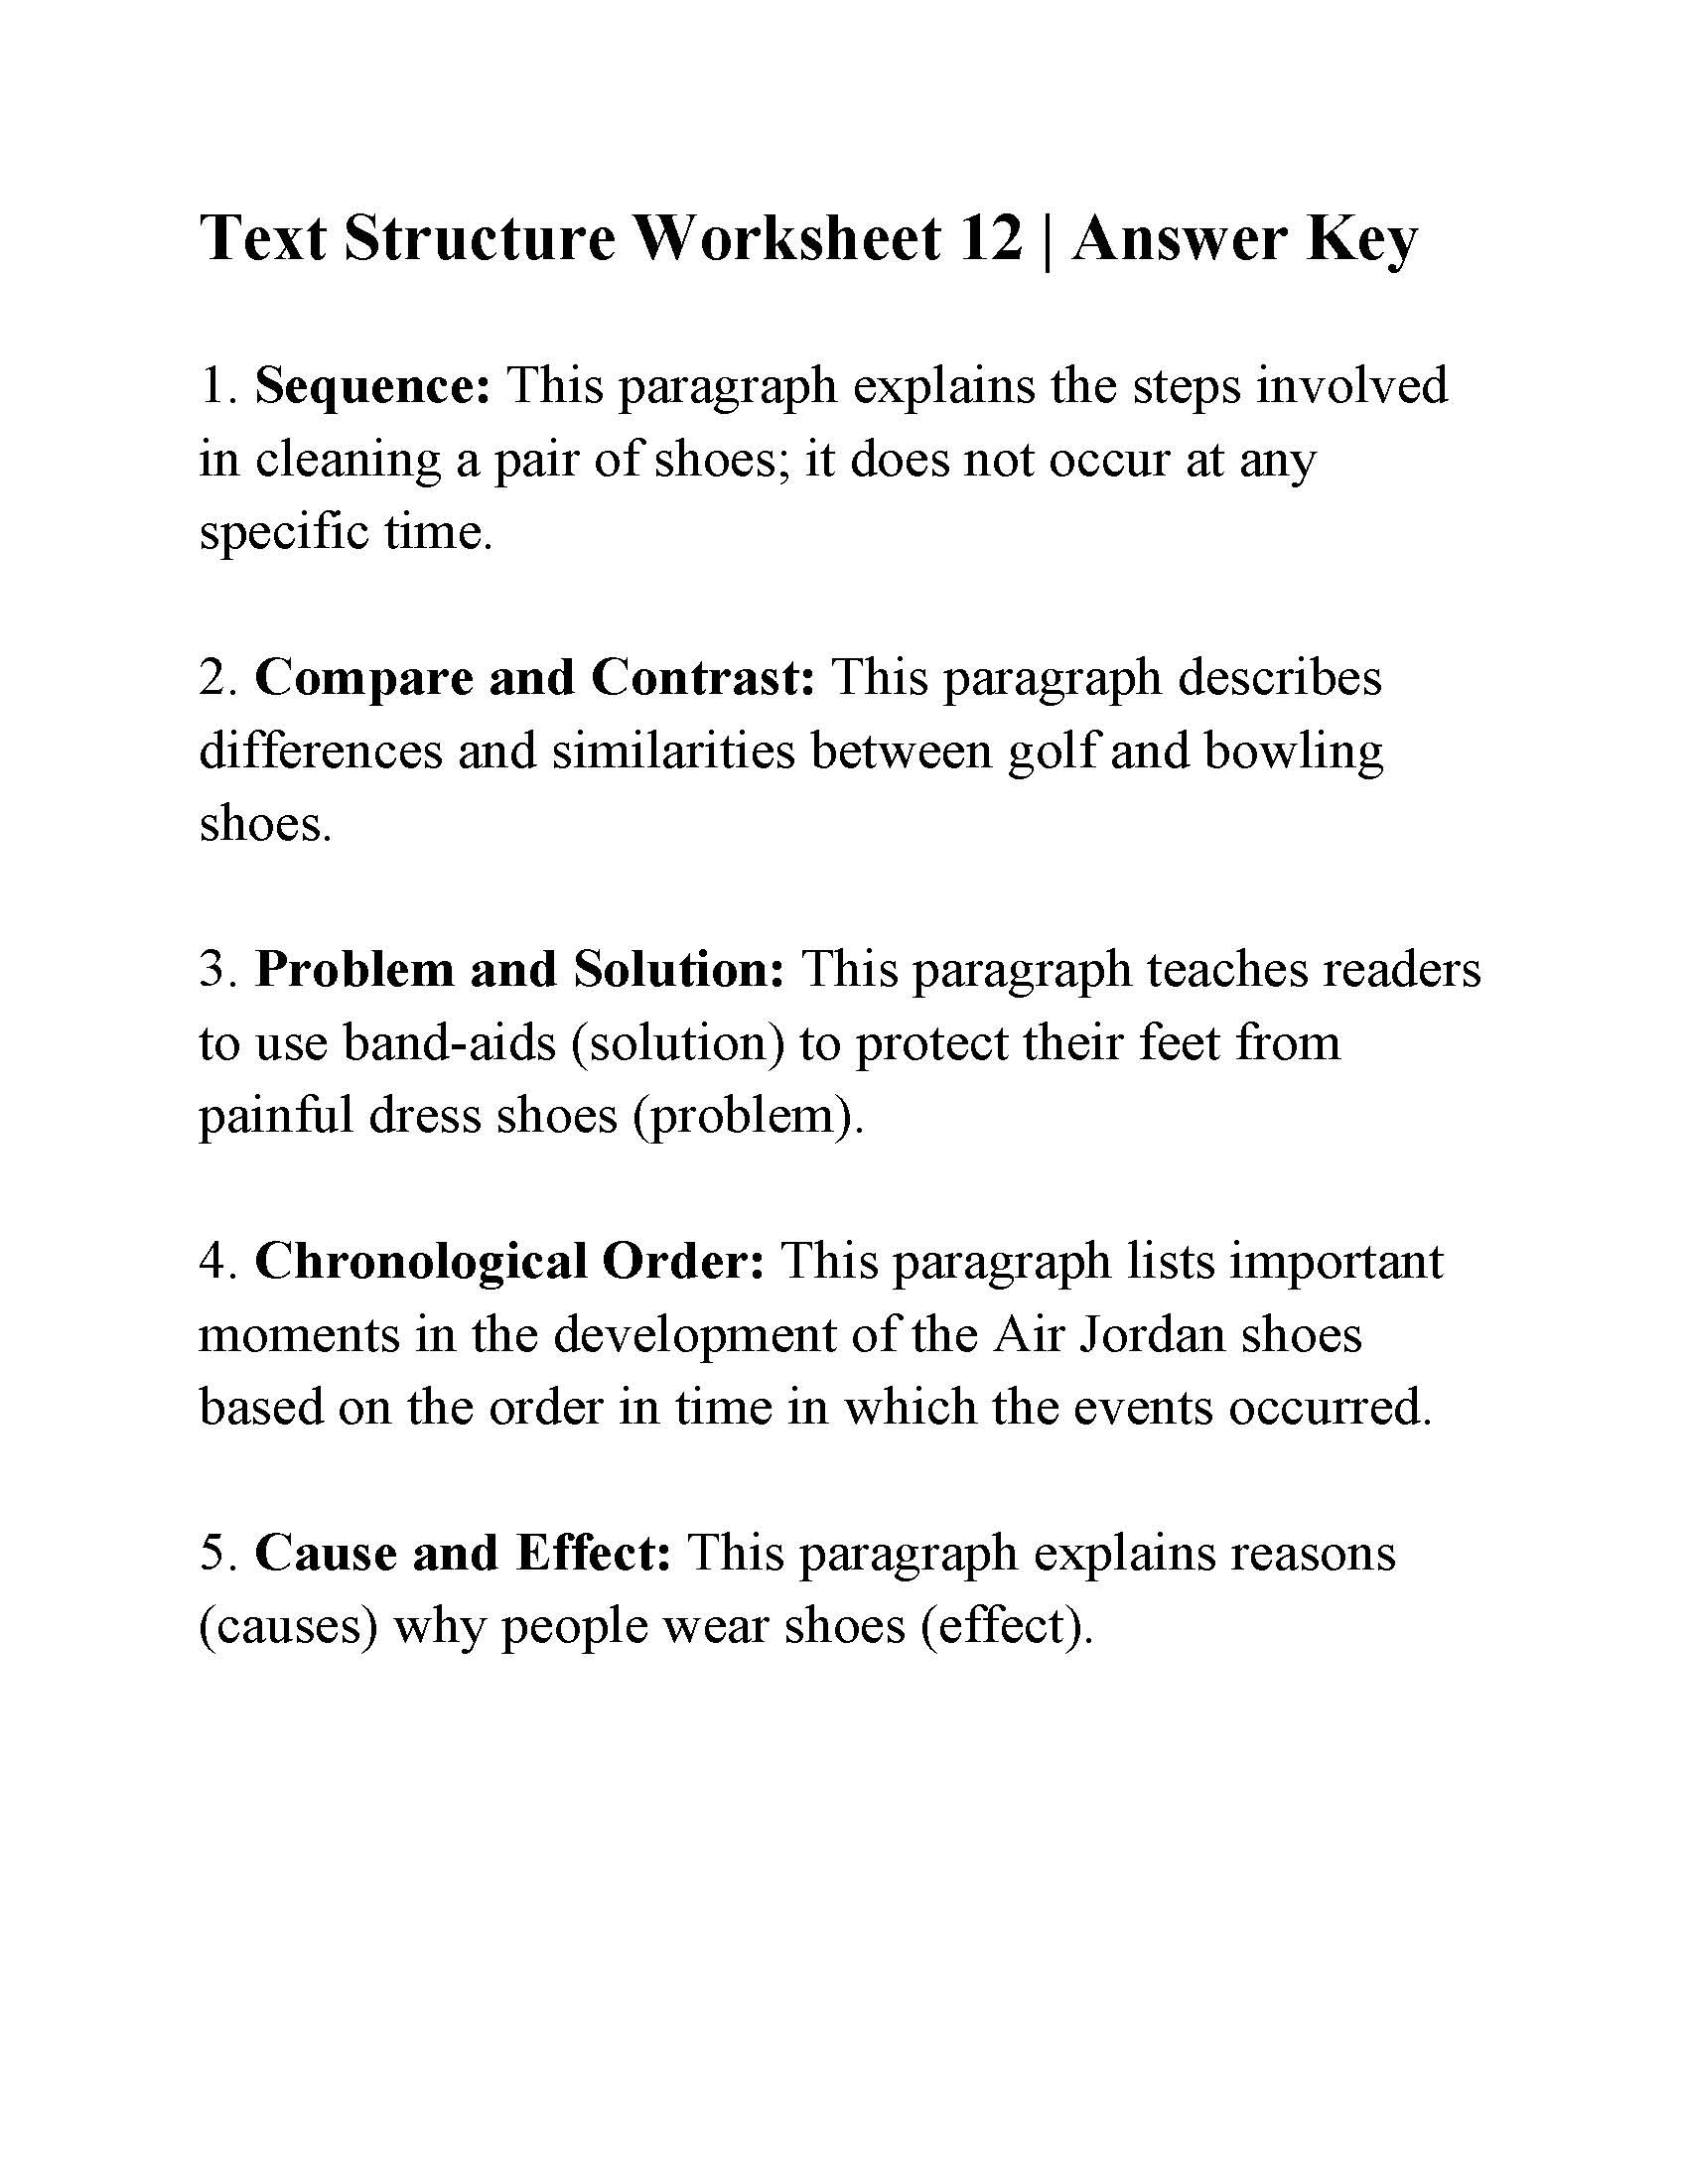 Text Structure Worksheets 4th Grade Text Structure Worksheet Answers Worksheets Math Sum solver